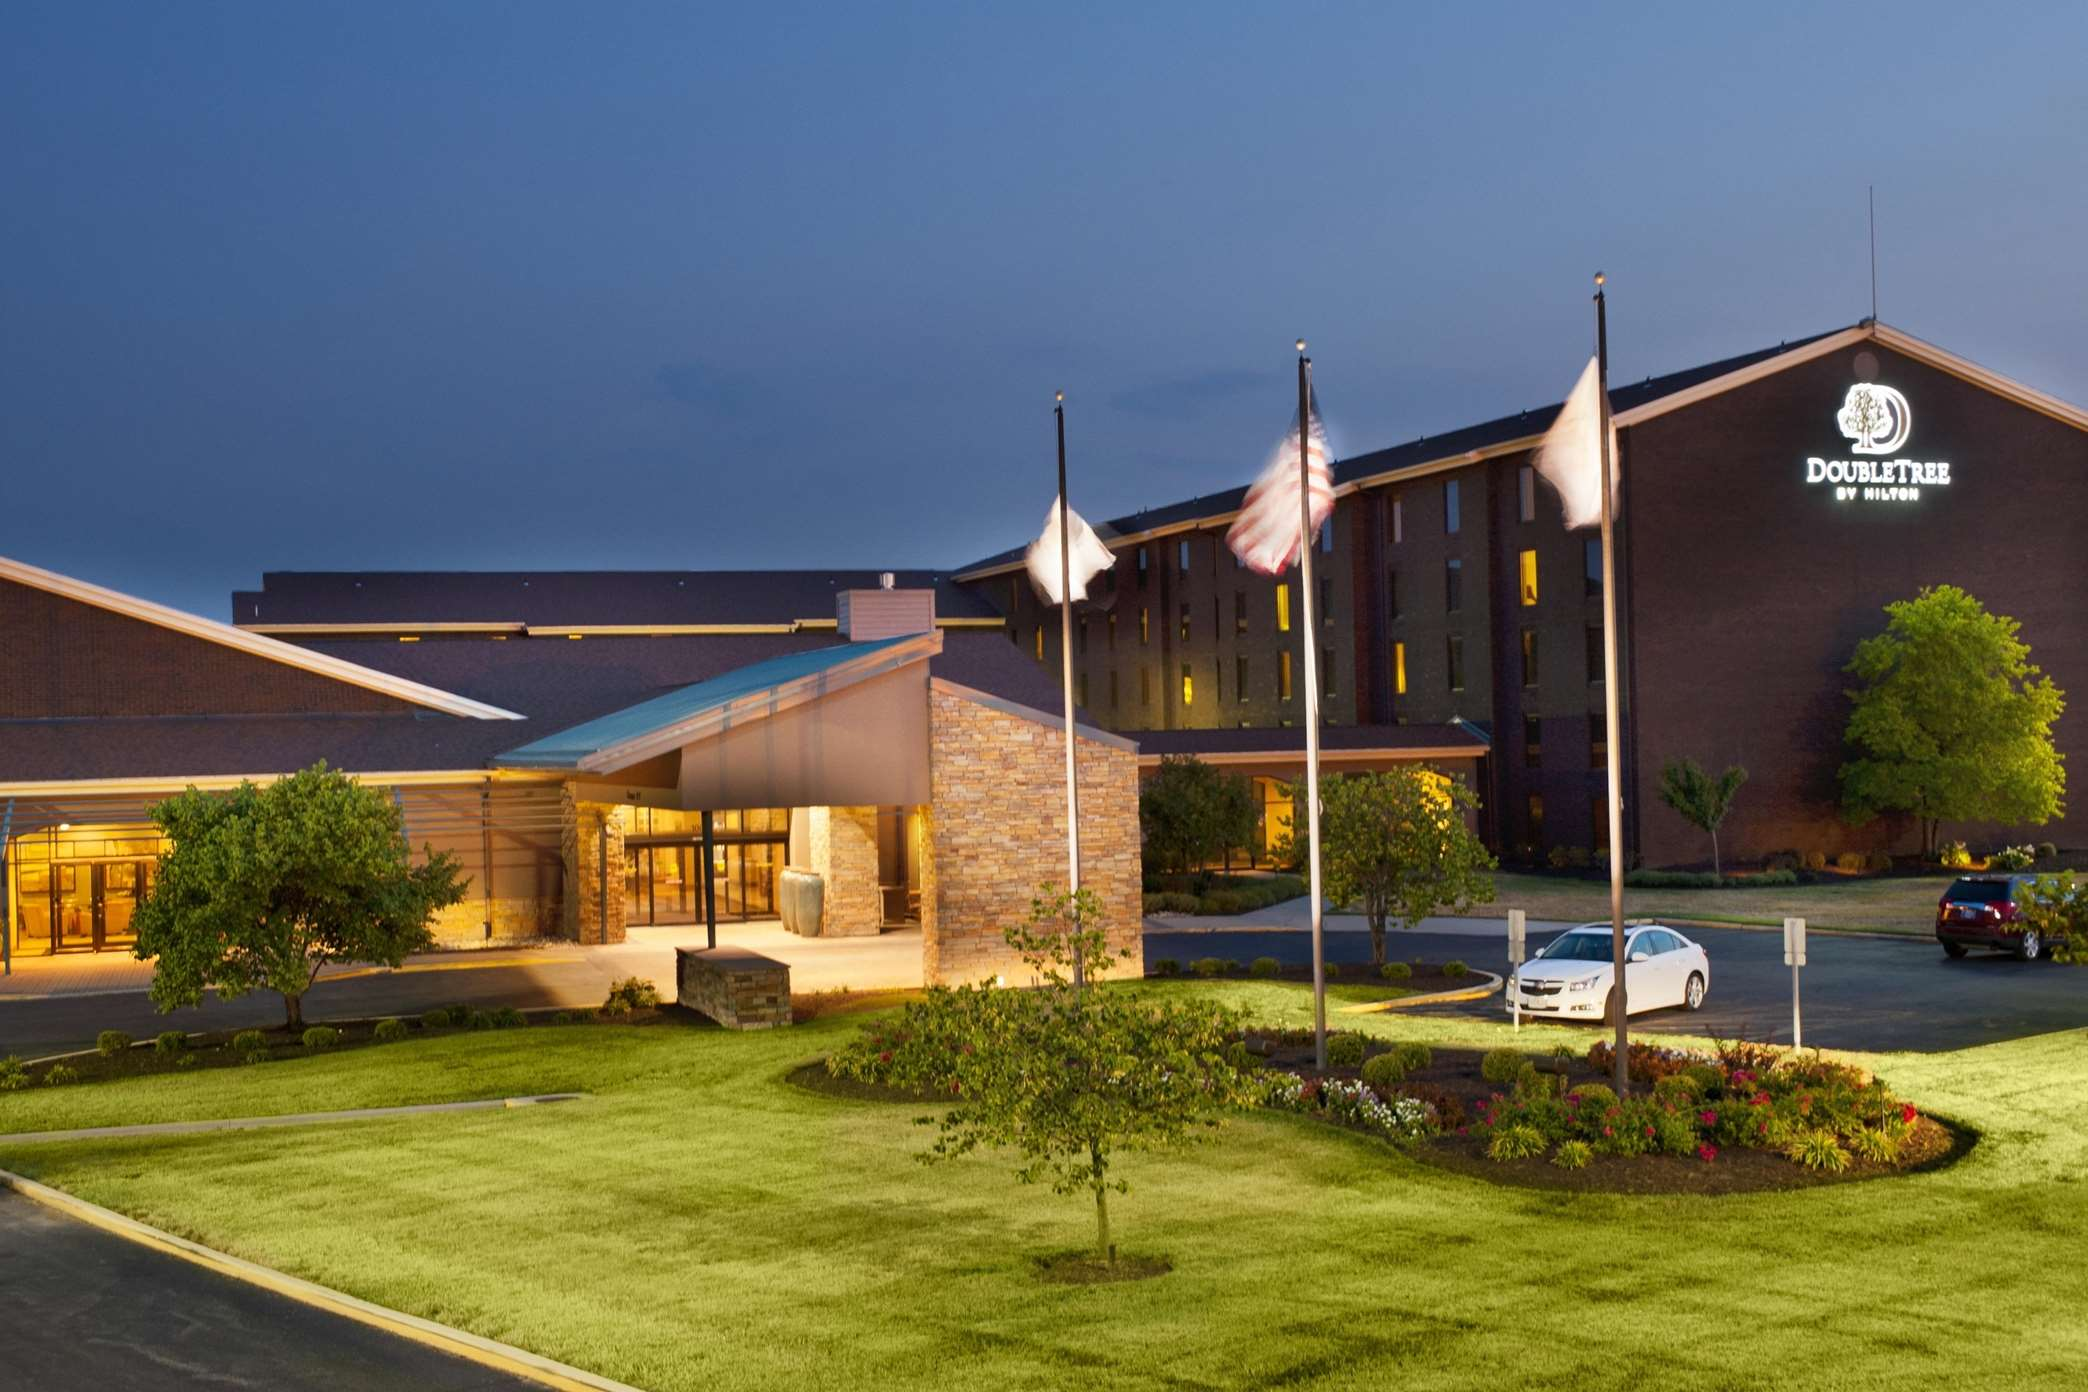 DoubleTree by Hilton Hotel Collinsville - St. Louis image 0